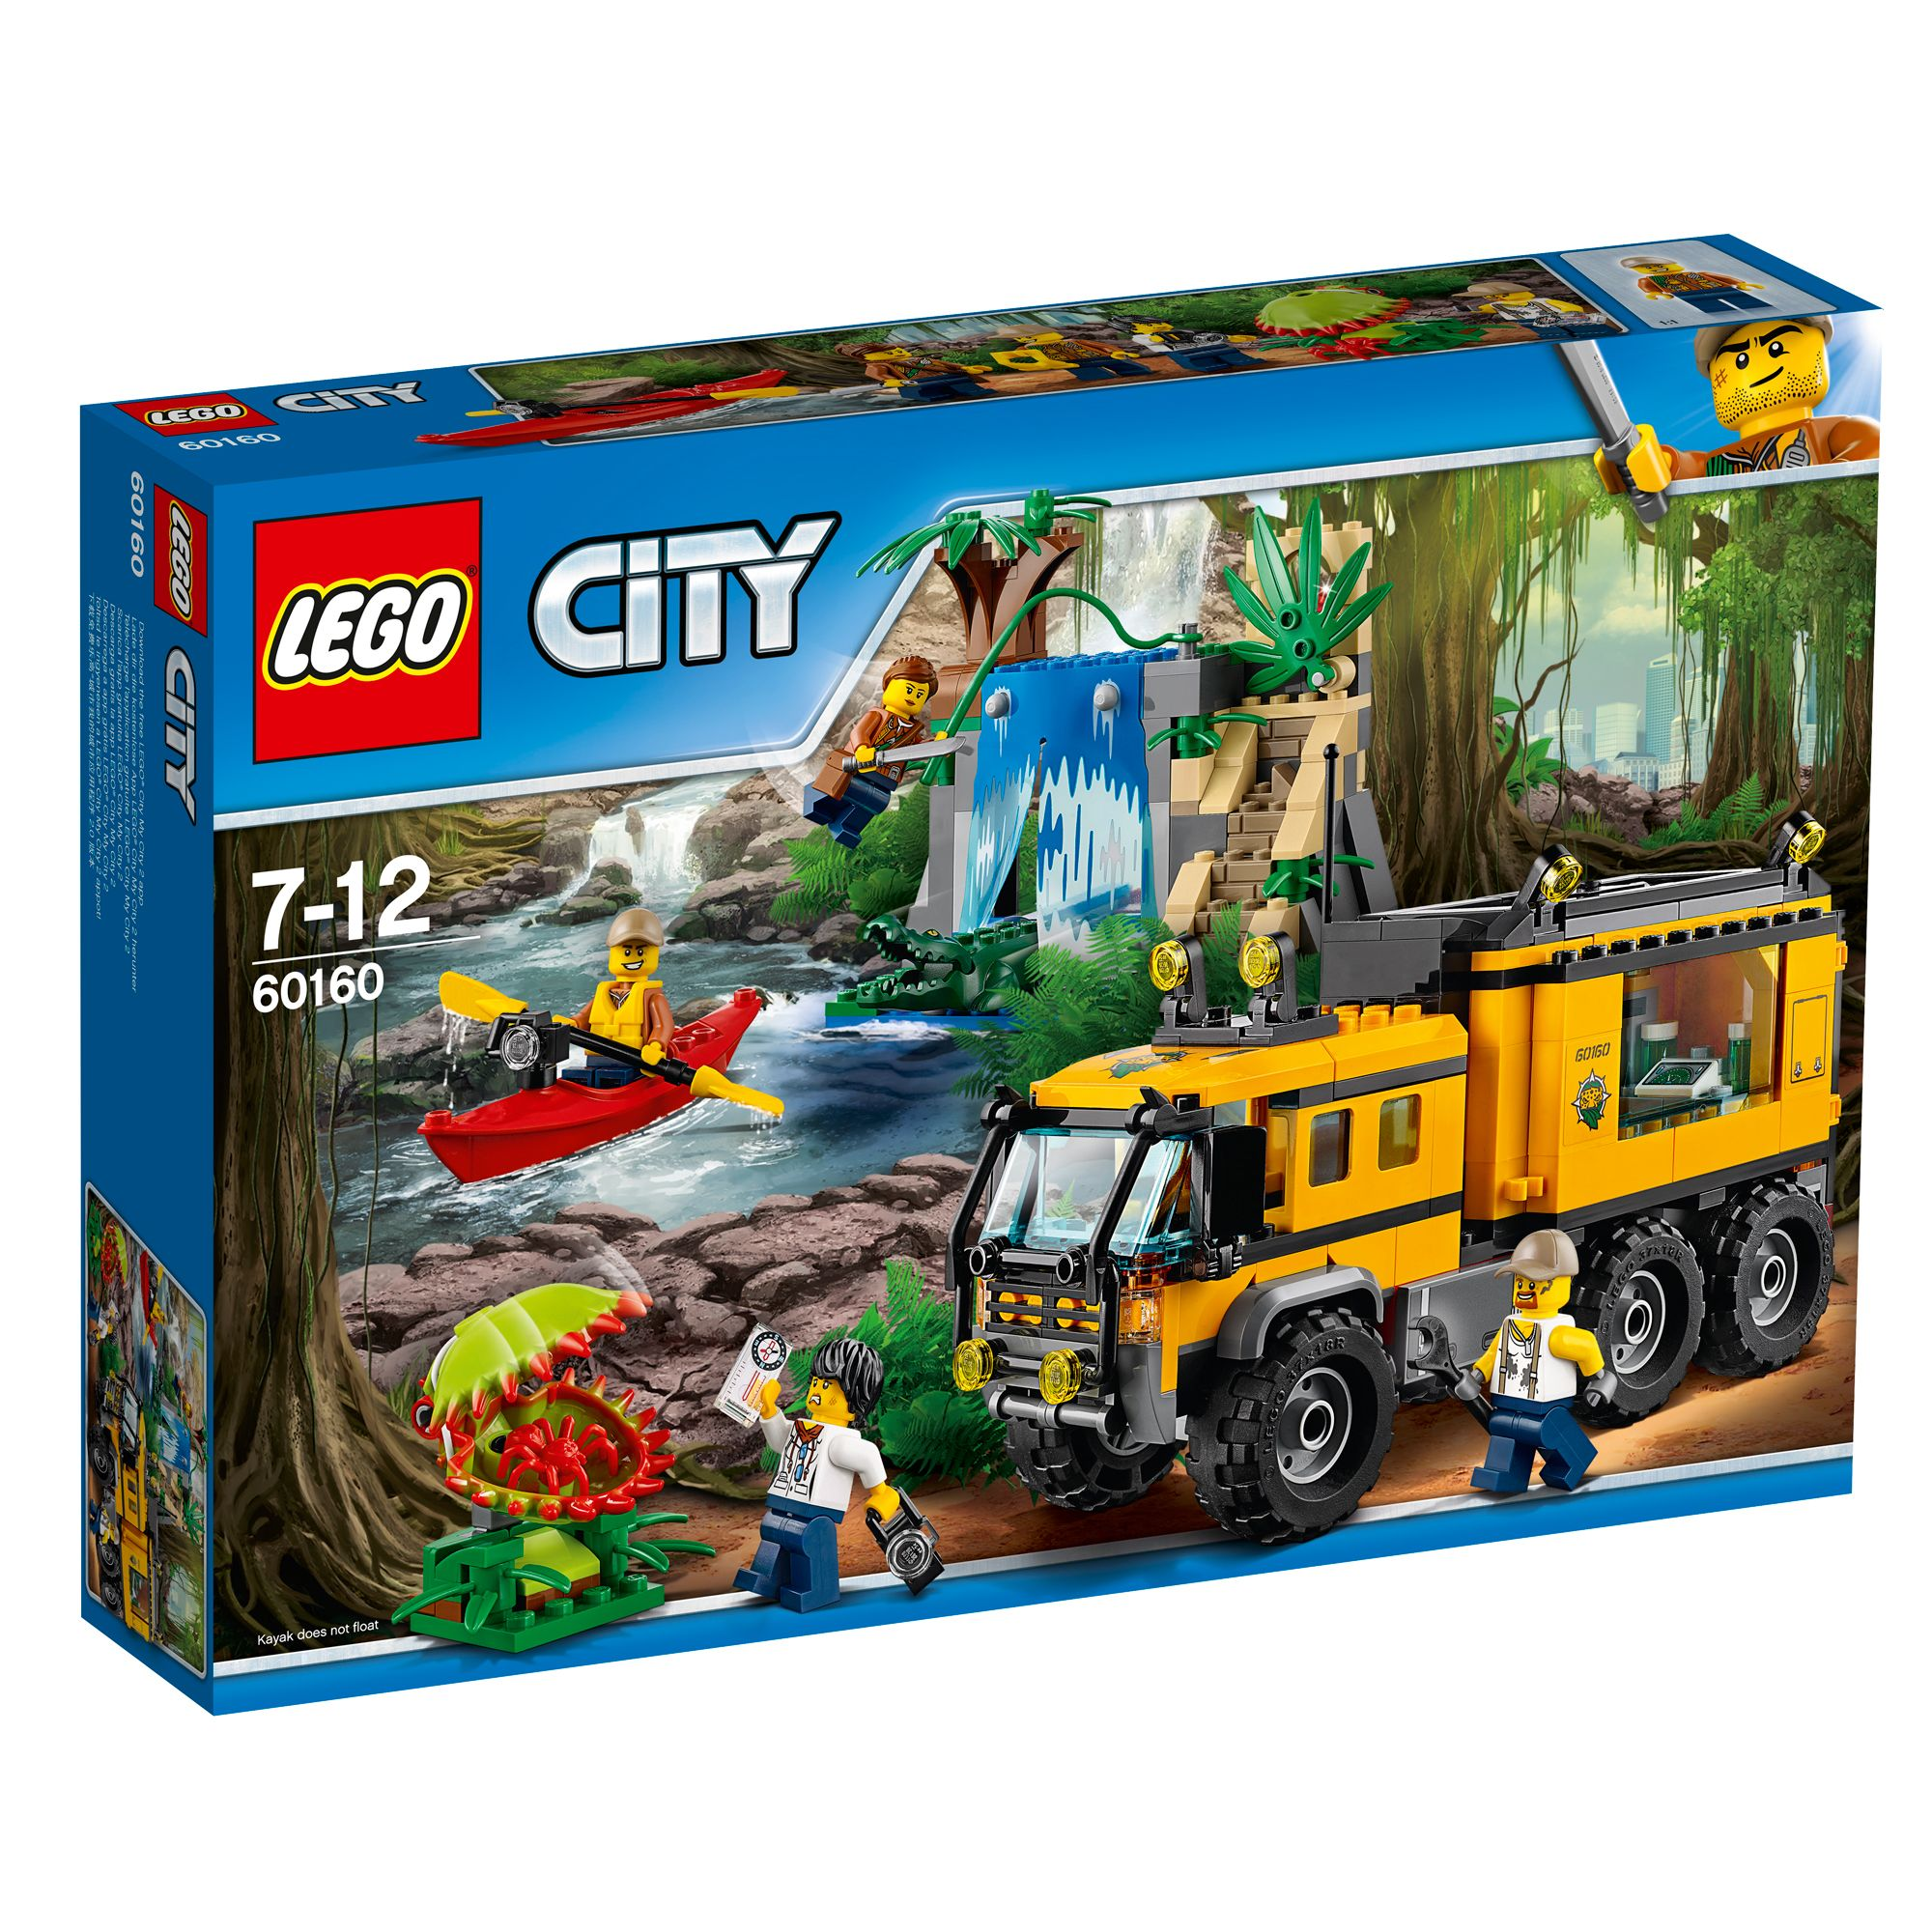 Buy Lego Minecraft The Jungle Tree House 21125 Entertainer Shop 21132 Temple City Mobile Lab 60160